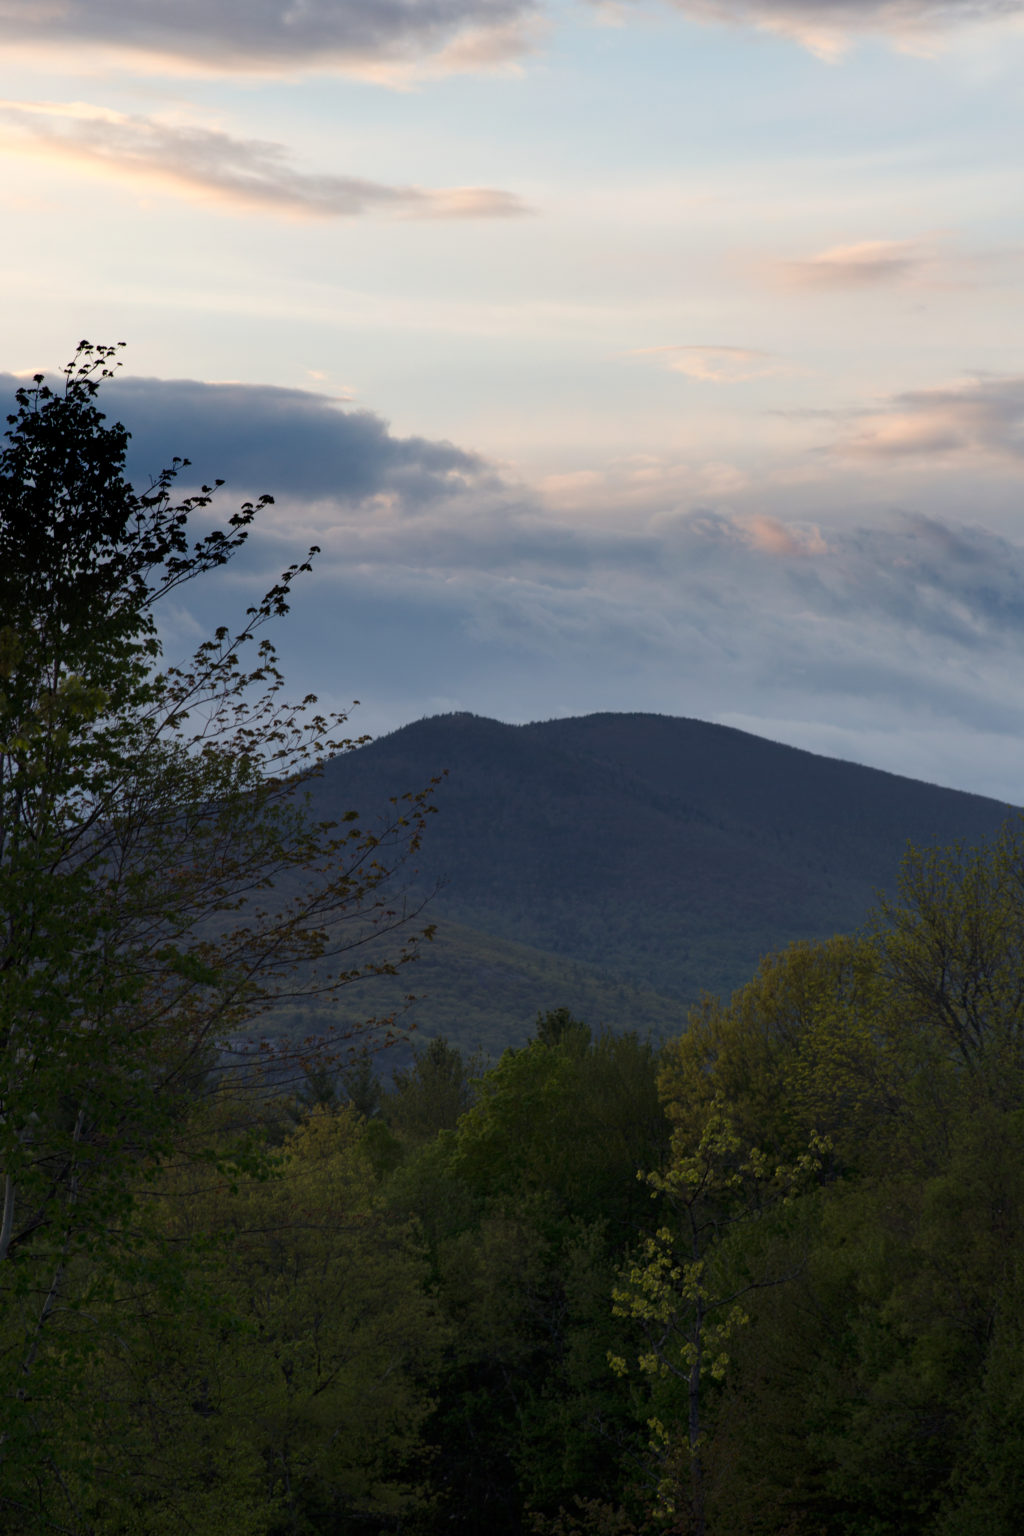 Mountain Rising in the Distance with Clouds